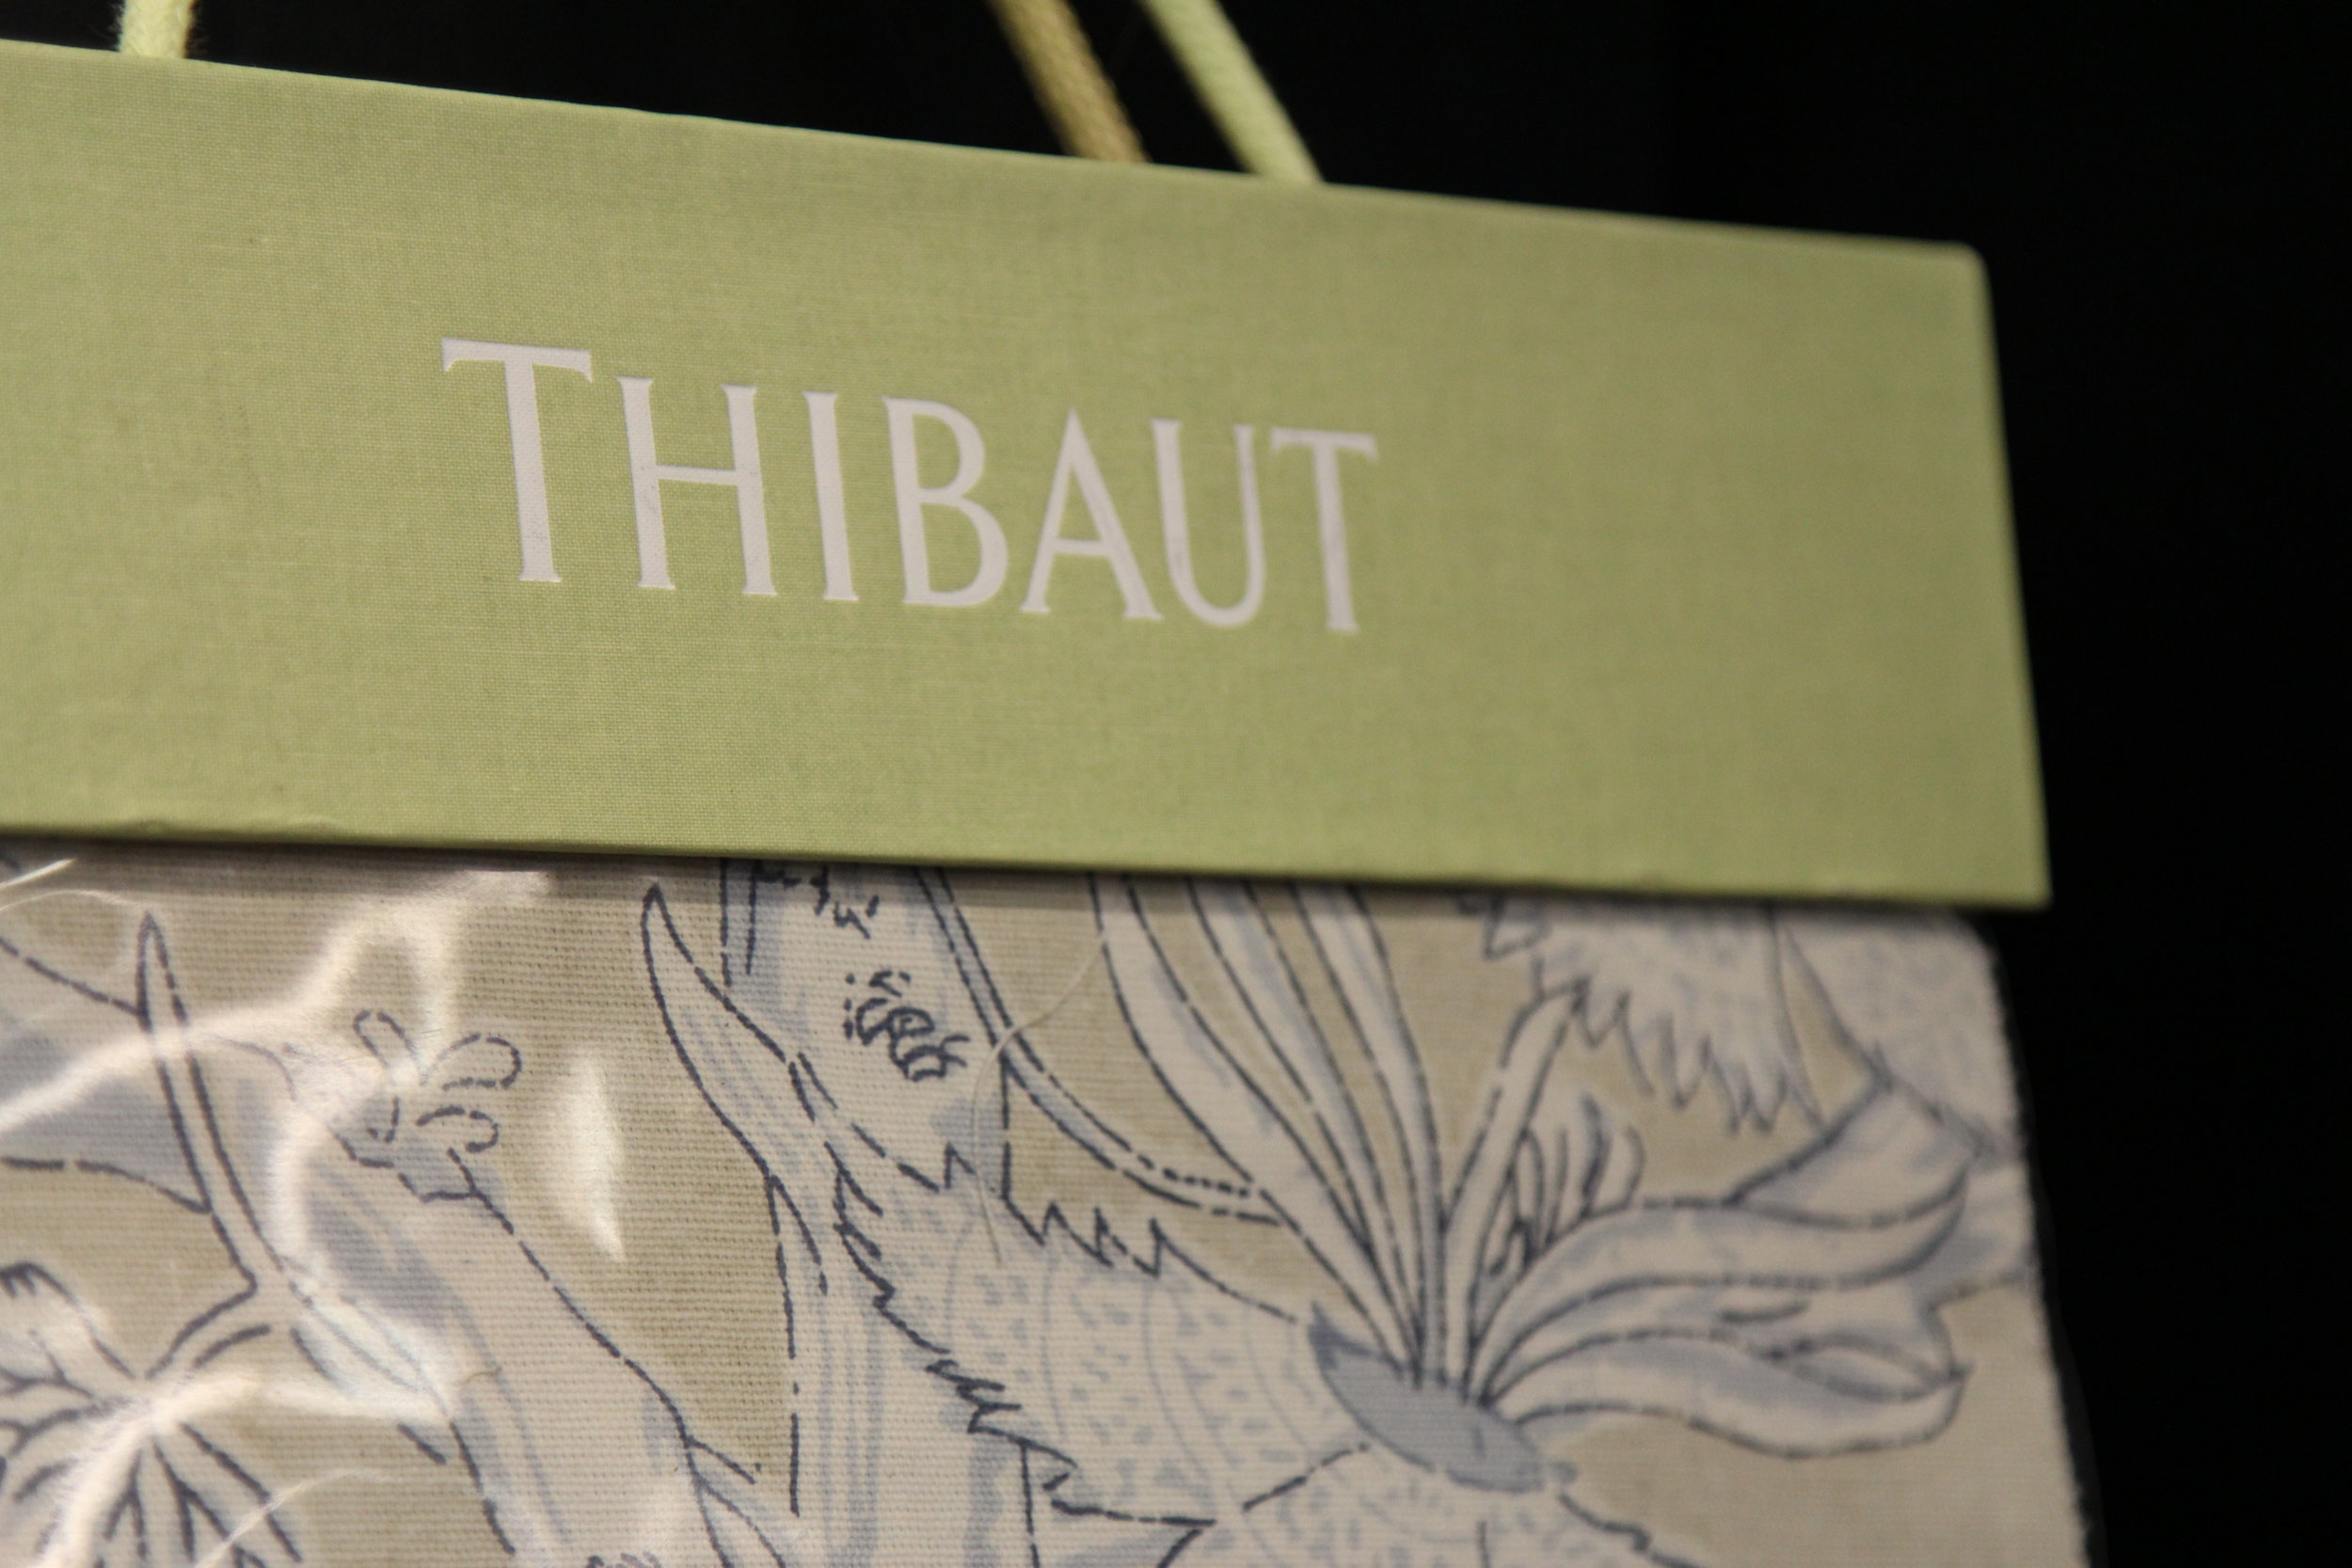 Thibaut Wallpaper and Fabrics  Thibaut is the nation's oldest operating designer wallpaper firm. Over the years, the company has broadened their offerings to include wallcoverings, print fabrics, embroideries, and woven upholstery fabrics.